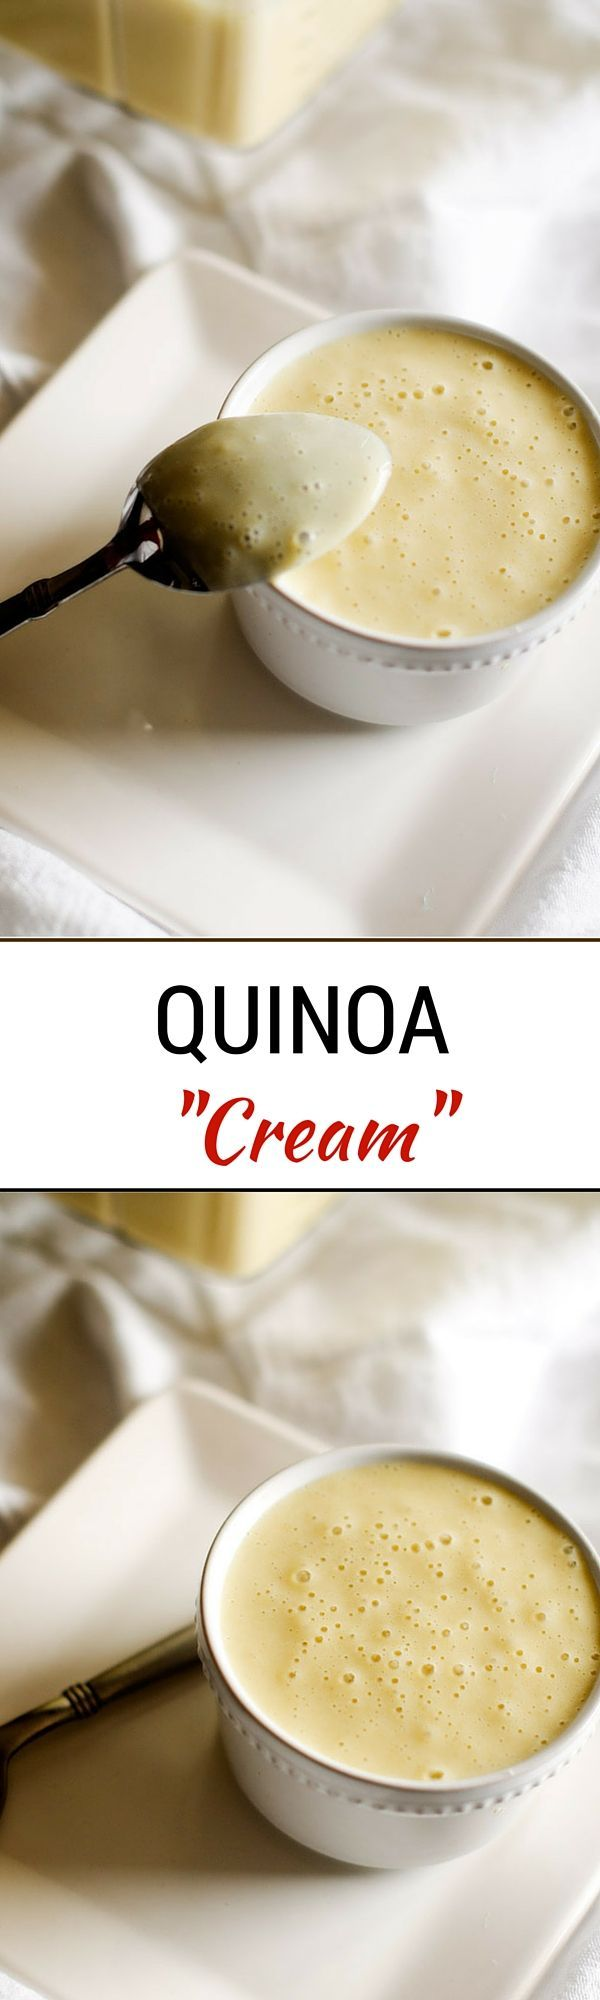 Quinoa Cream - This healthier alternative to heavy cream is naturally gluten free and easily made vegan. - WendyPolisi.com  ½ cup quinoa, rinsed 2 cups vegetable broth 1 cup milk of choice (unsweetened - I used almond)